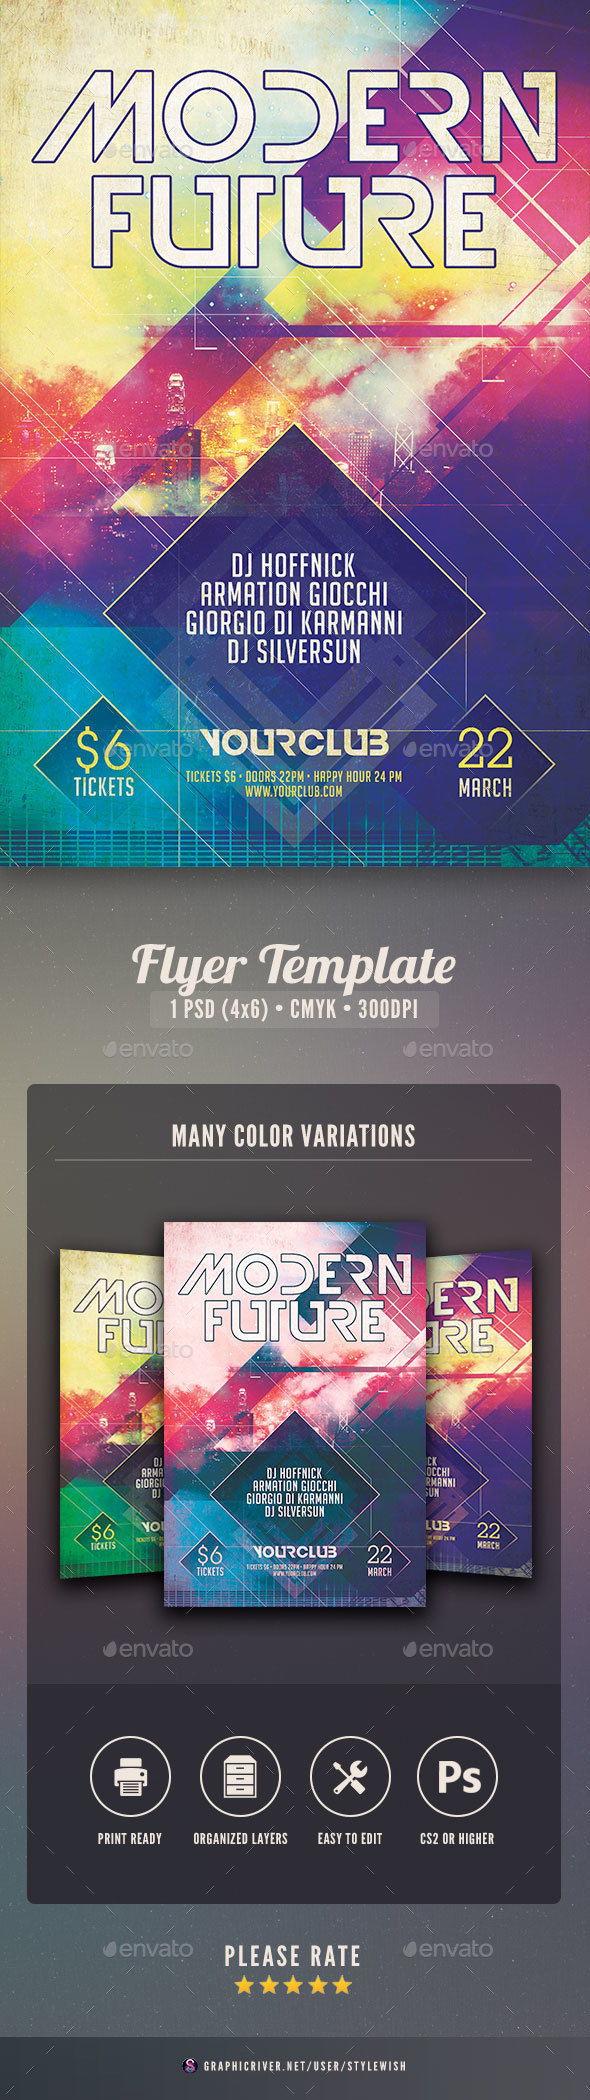 Modern Future Flyer - Clubs & Parties Events